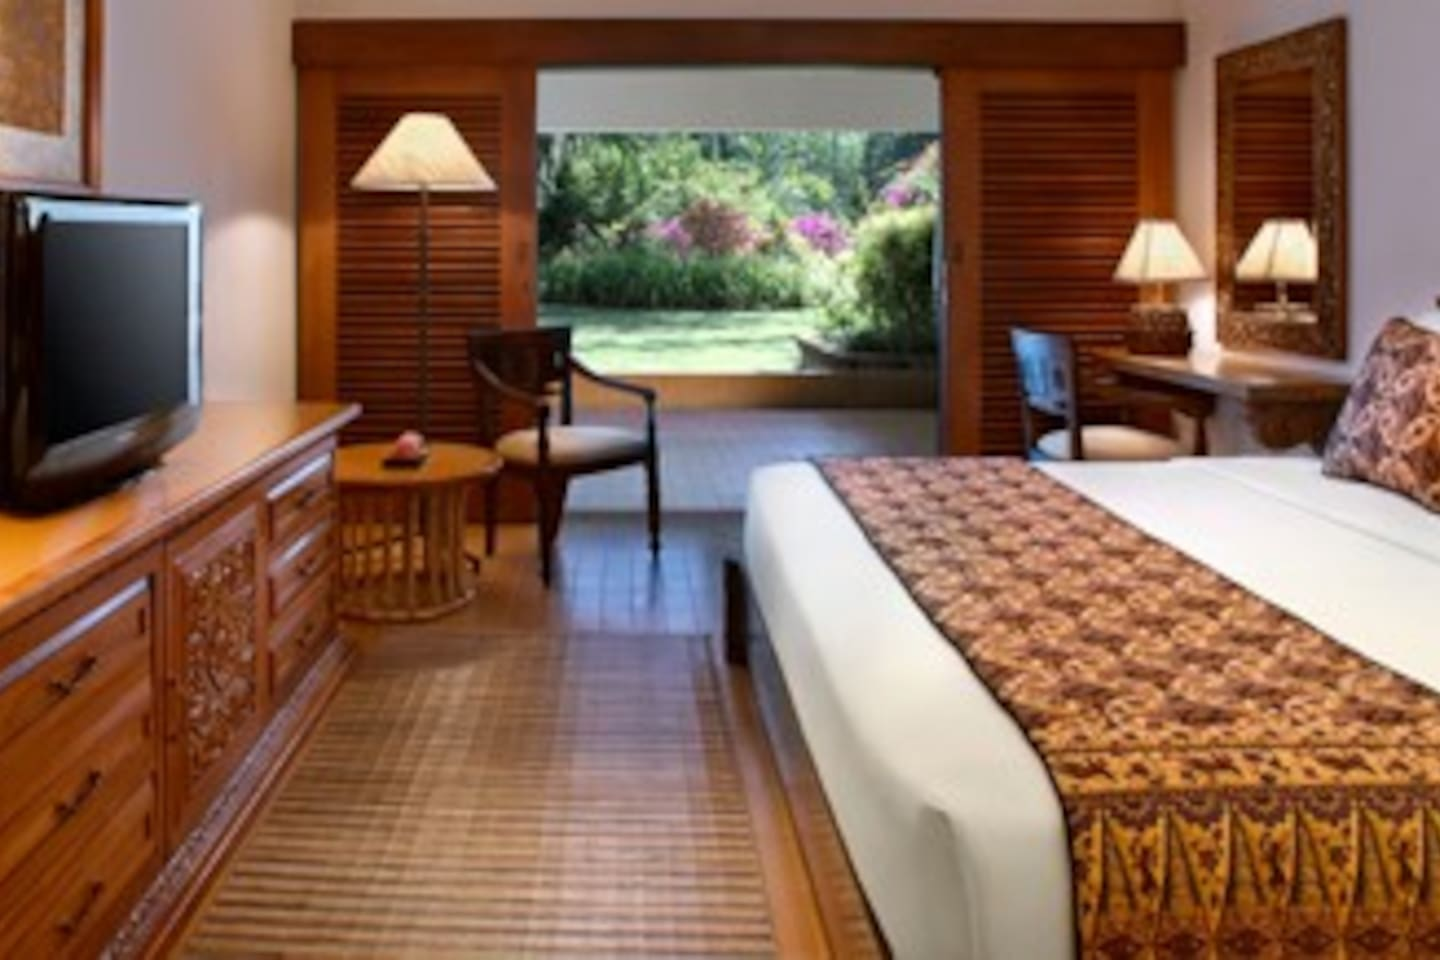 King Room with Balcony view